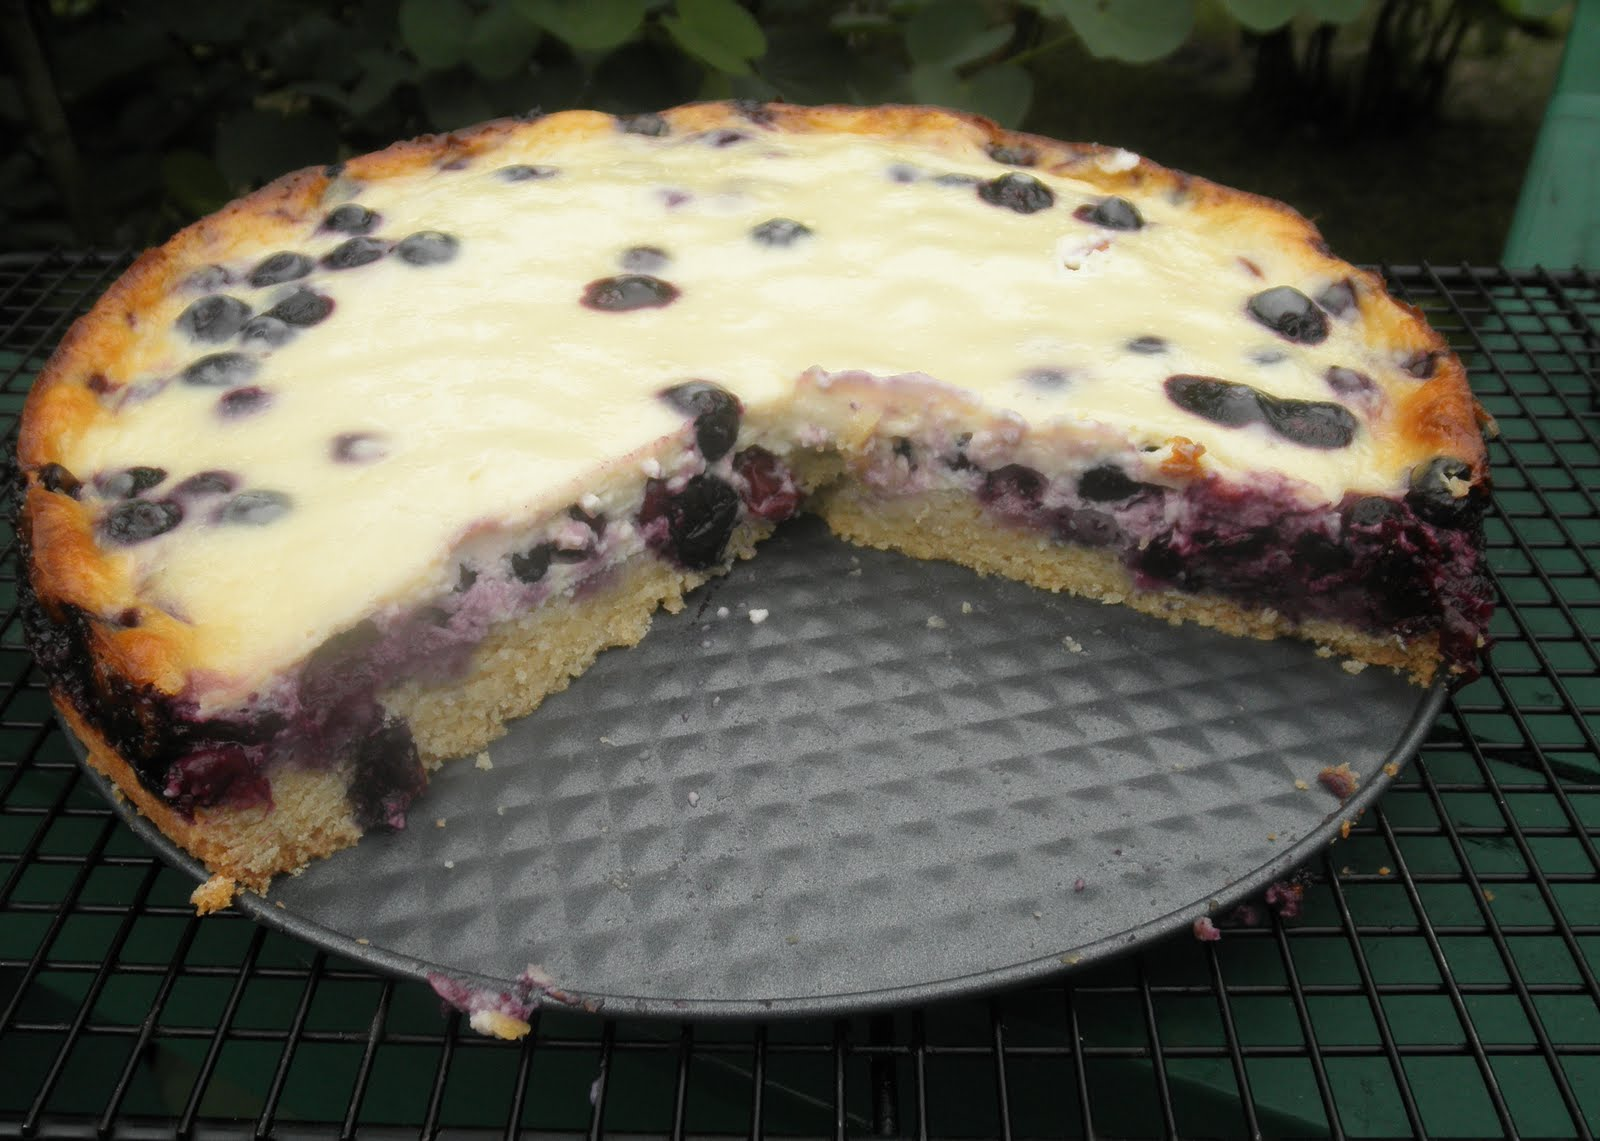 Concetta's Cafe: Nova Scotia Blueberry Cream Cake